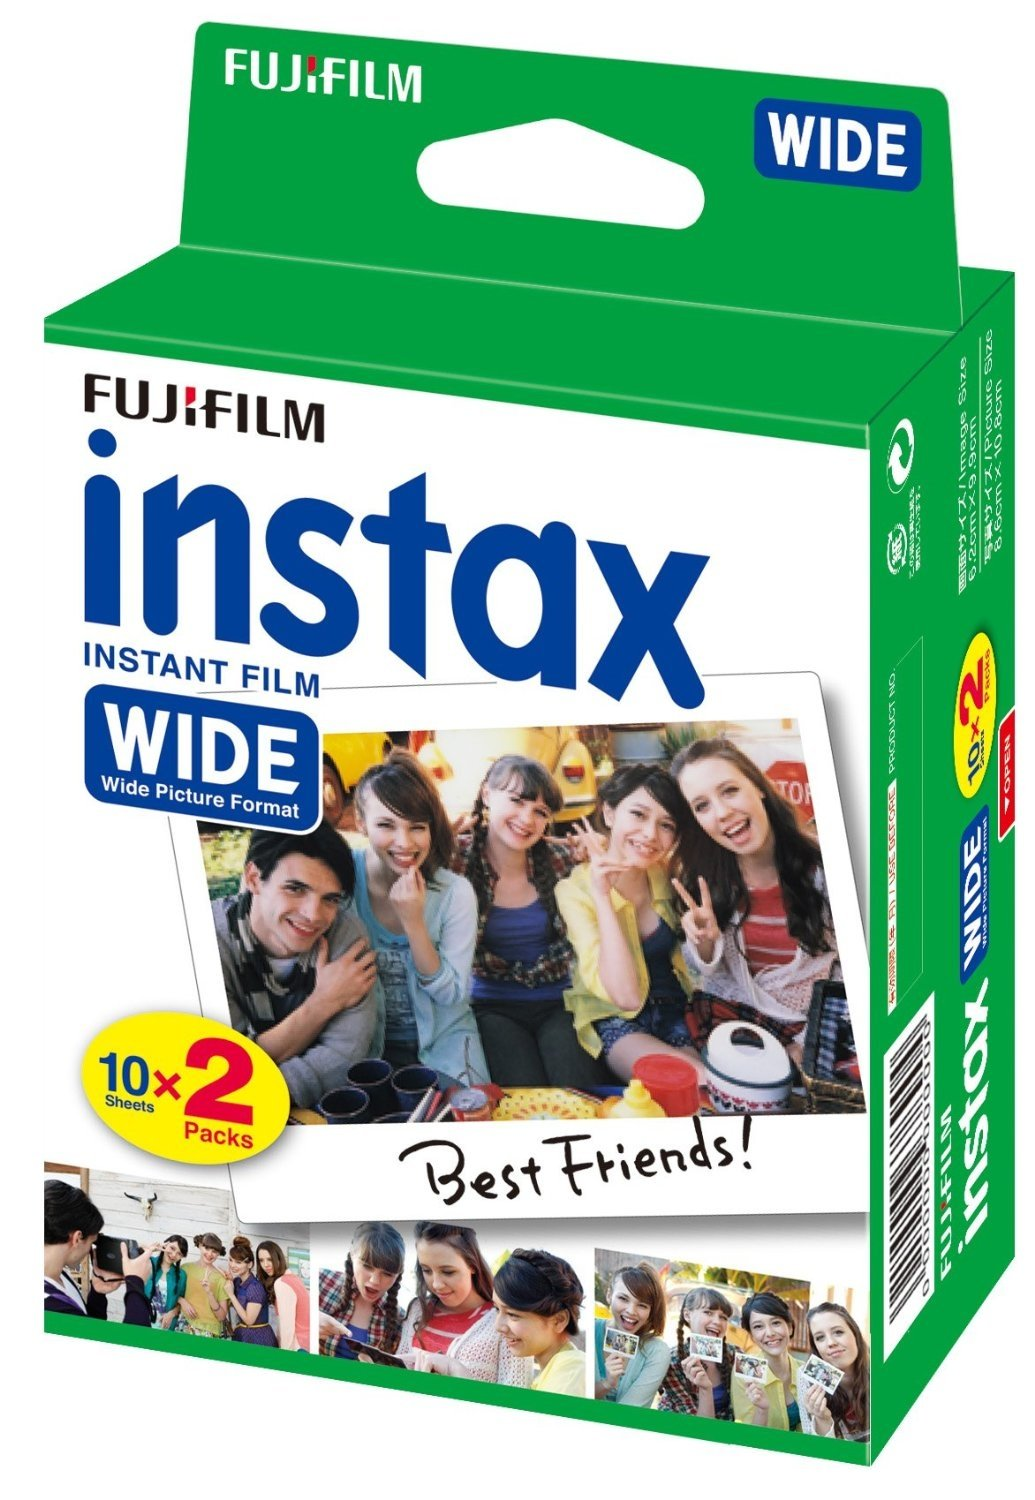 FUJIFILM INSTAX COLORFILM WIDE (20KS)